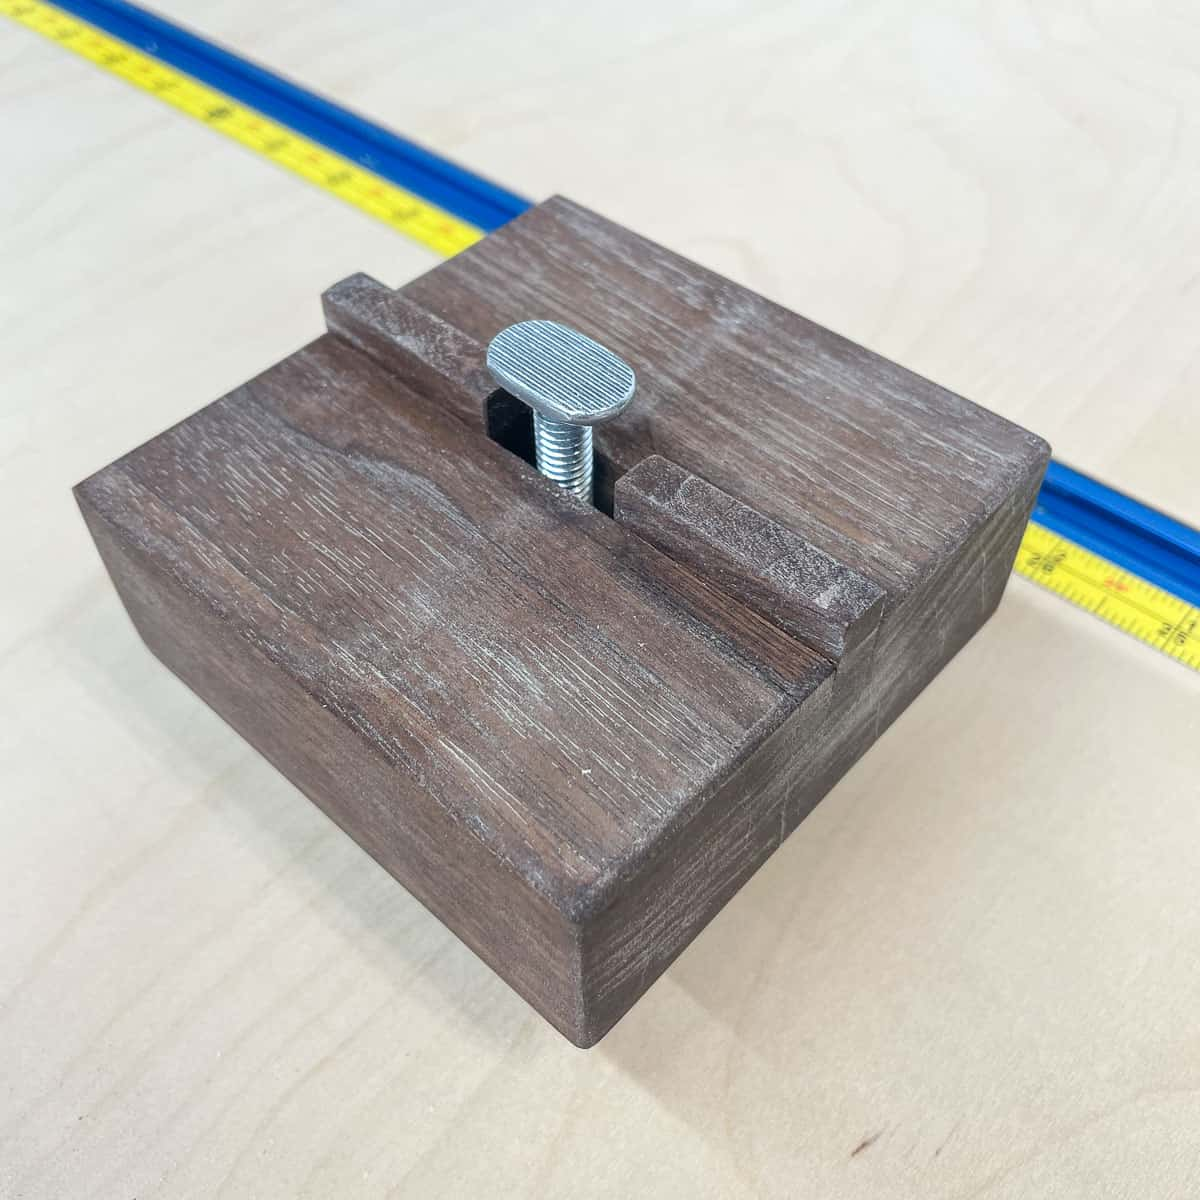 bottom of t track stop block with bolt between two wooden runners